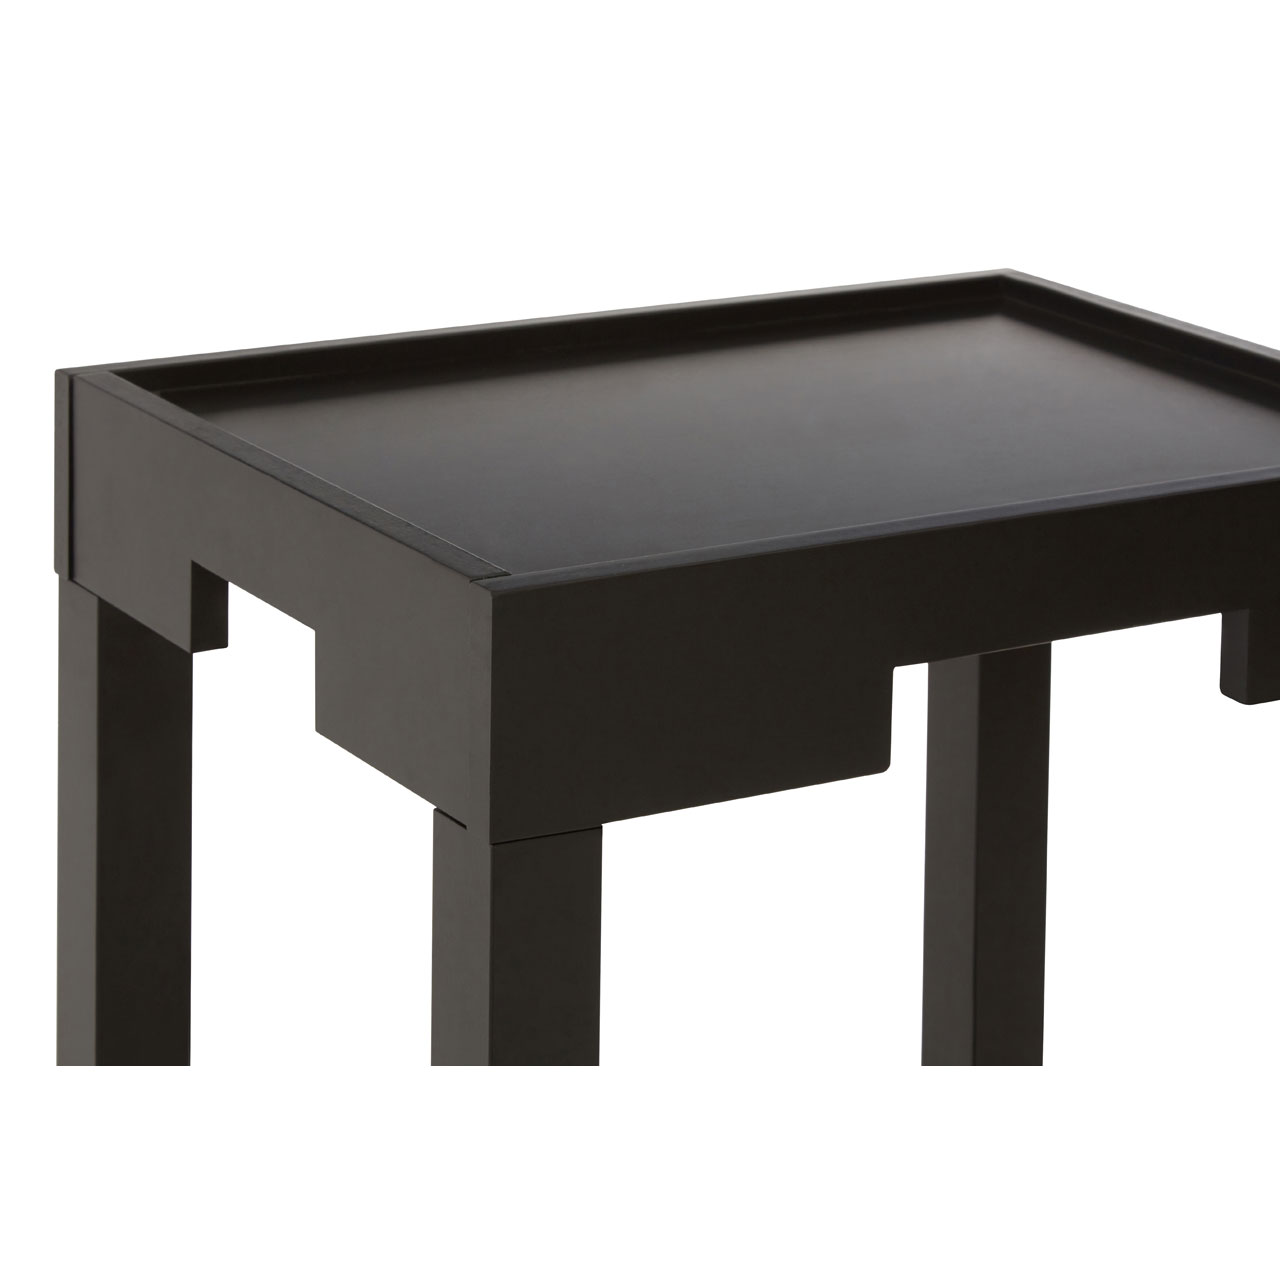 Black Coffee Table With Storage Uk: Home Hall Black Wooden Side End Coffee Table Storage Shelf